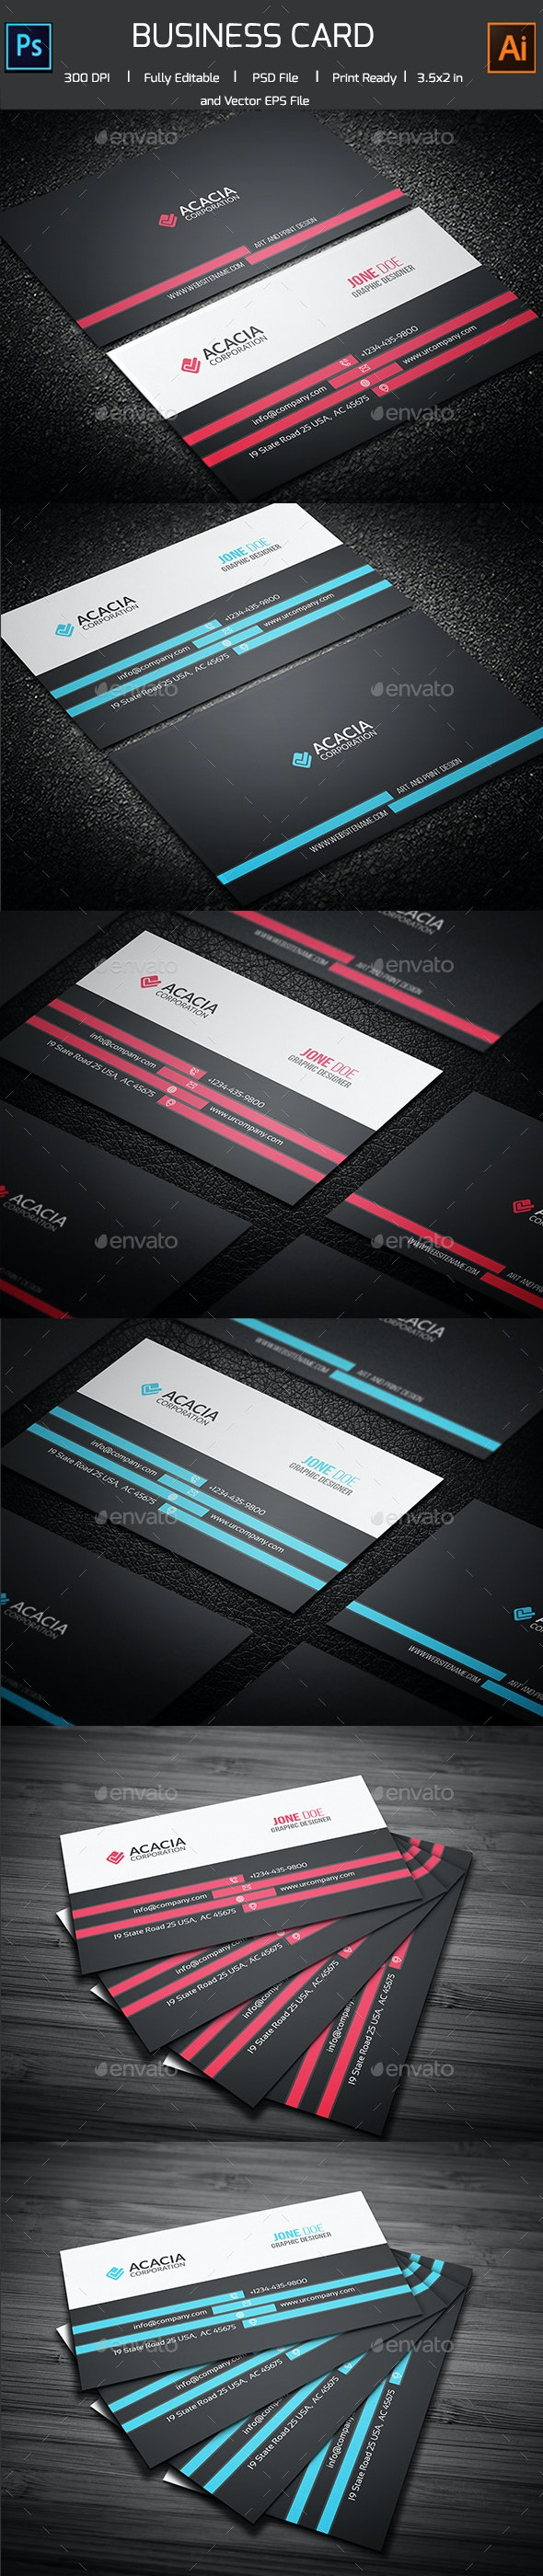 Kanial Business Card - Corporate Business Cards